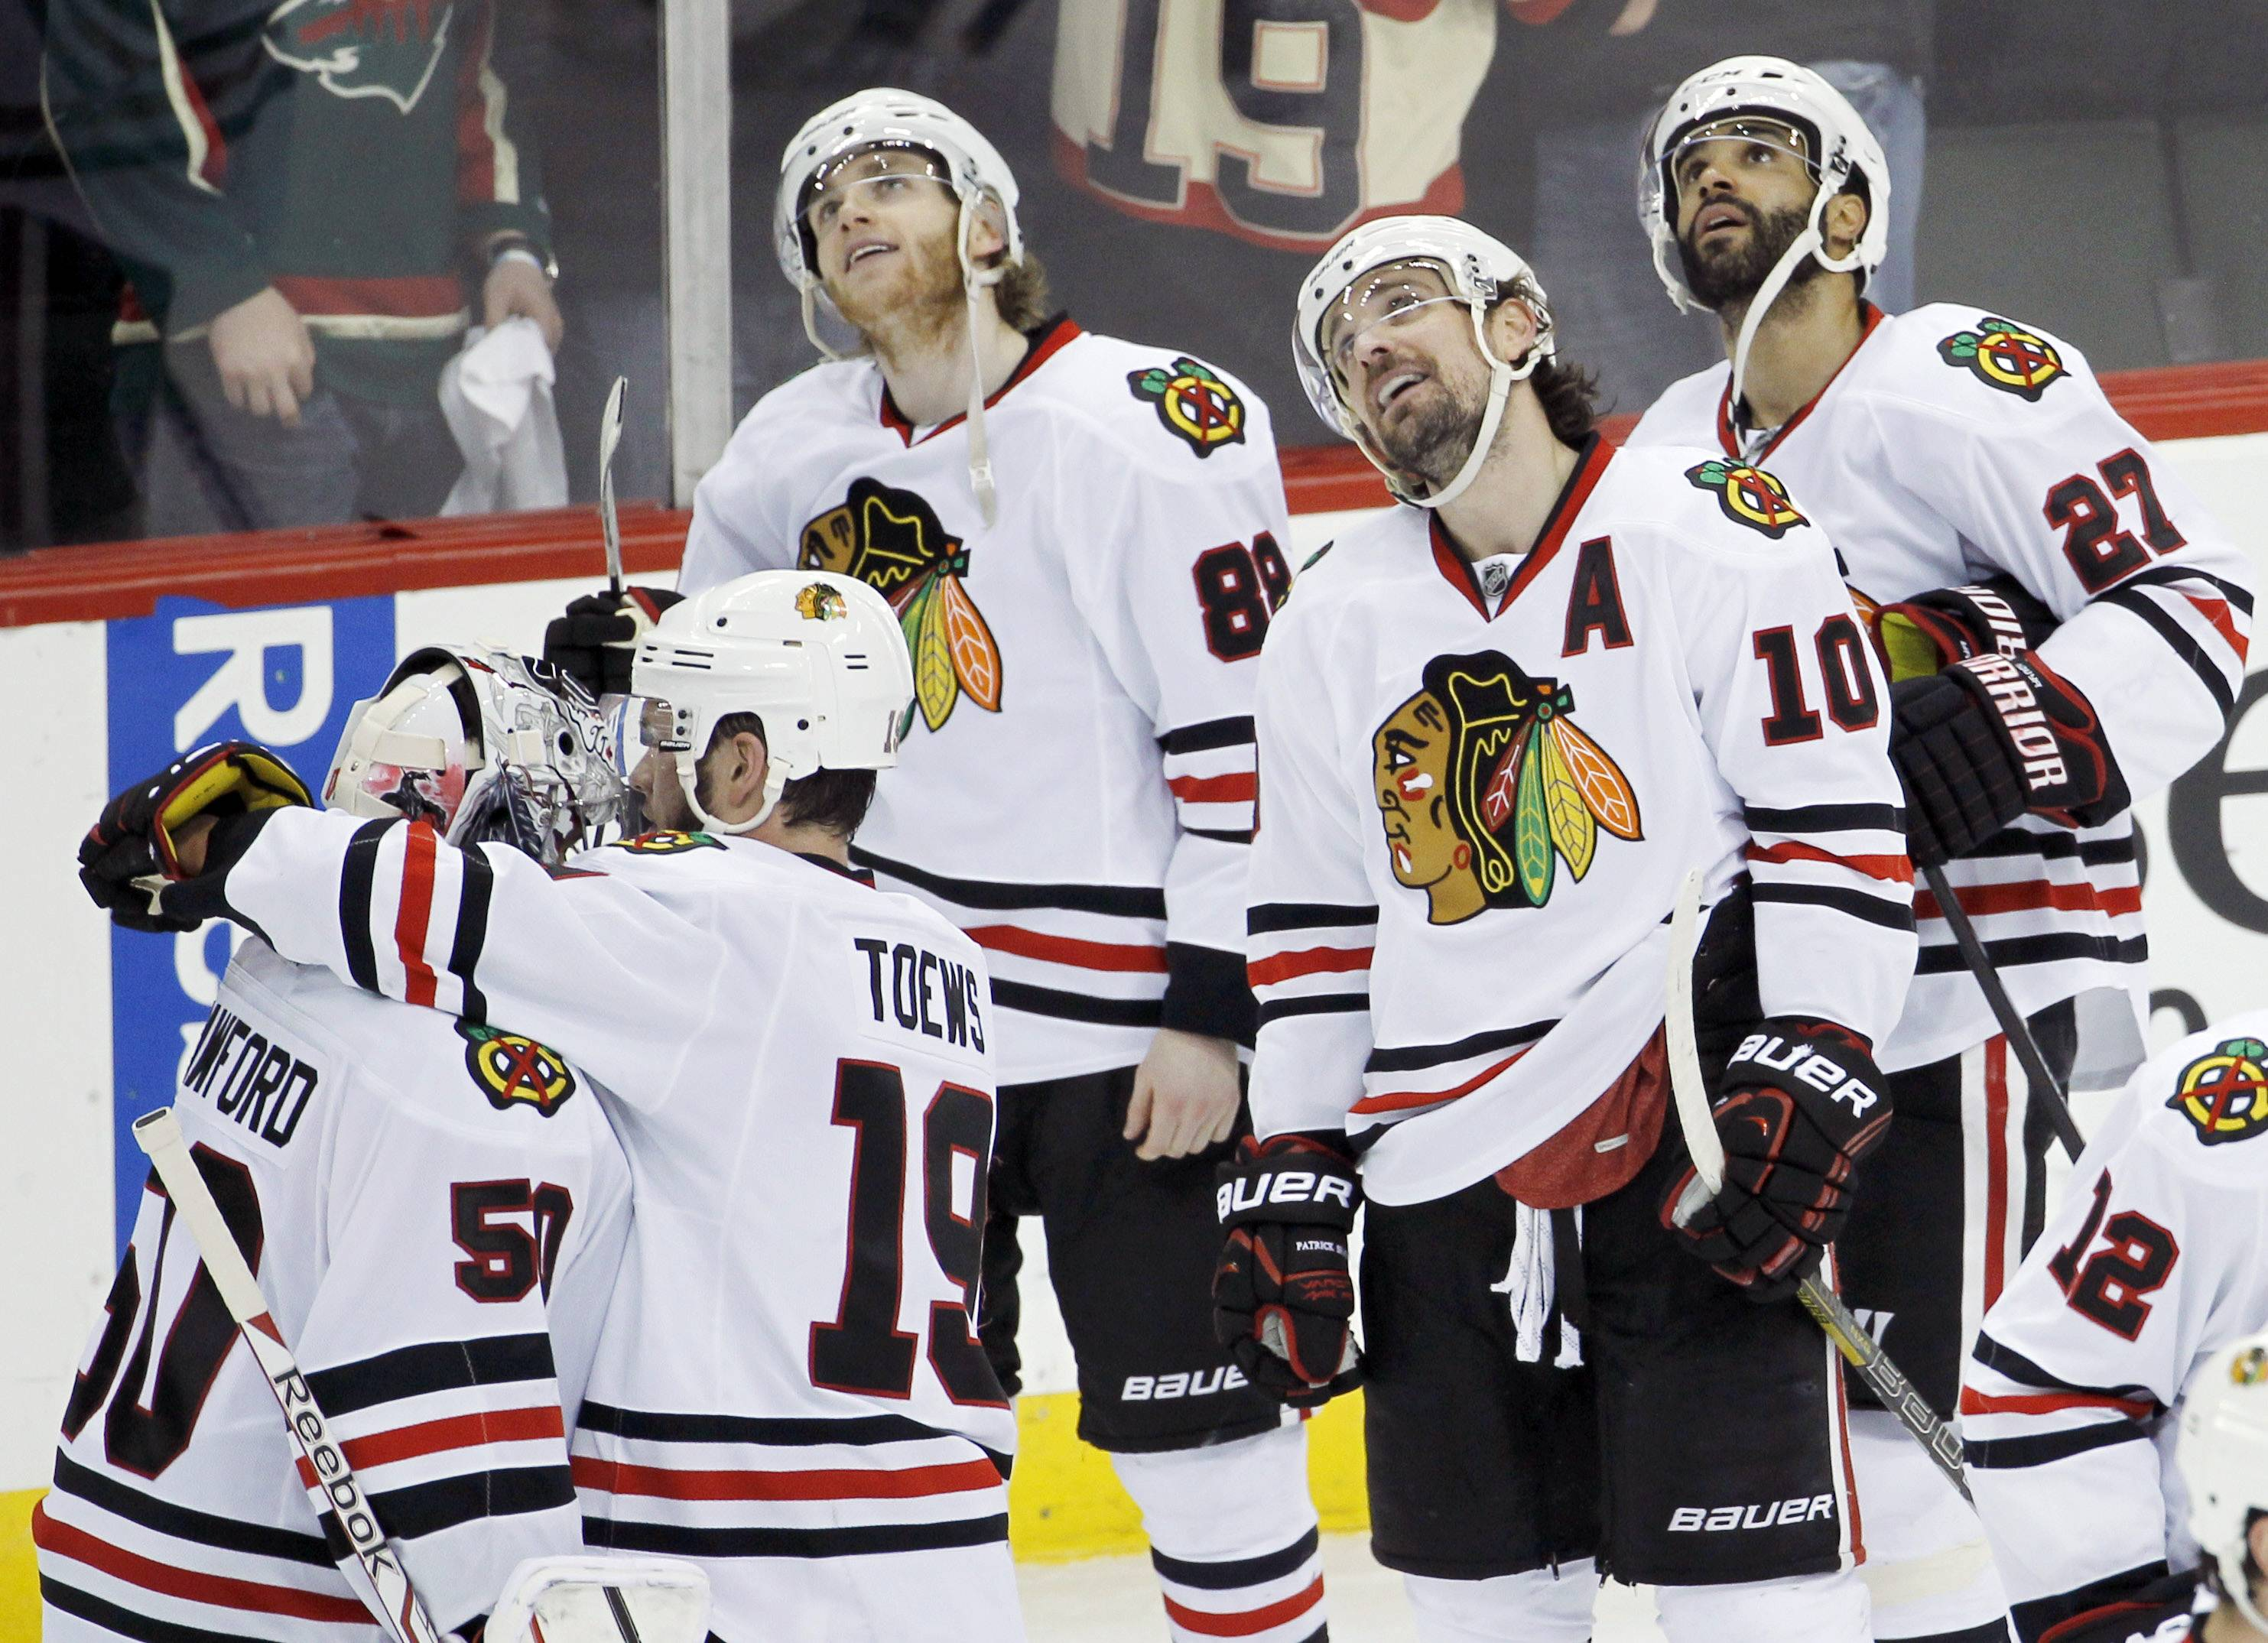 Chicago Blackhawks right wing Patrick Kane, left wing Patrick Sharp (10) and defenseman Johnny Oduya (27) watch the replay of Kane's game-winning goal on Minnesota Wild goalie Ilya Bryzgalov as Blackhawks center Jonathan Toews (19) greets goalie Corey Crawford (50).